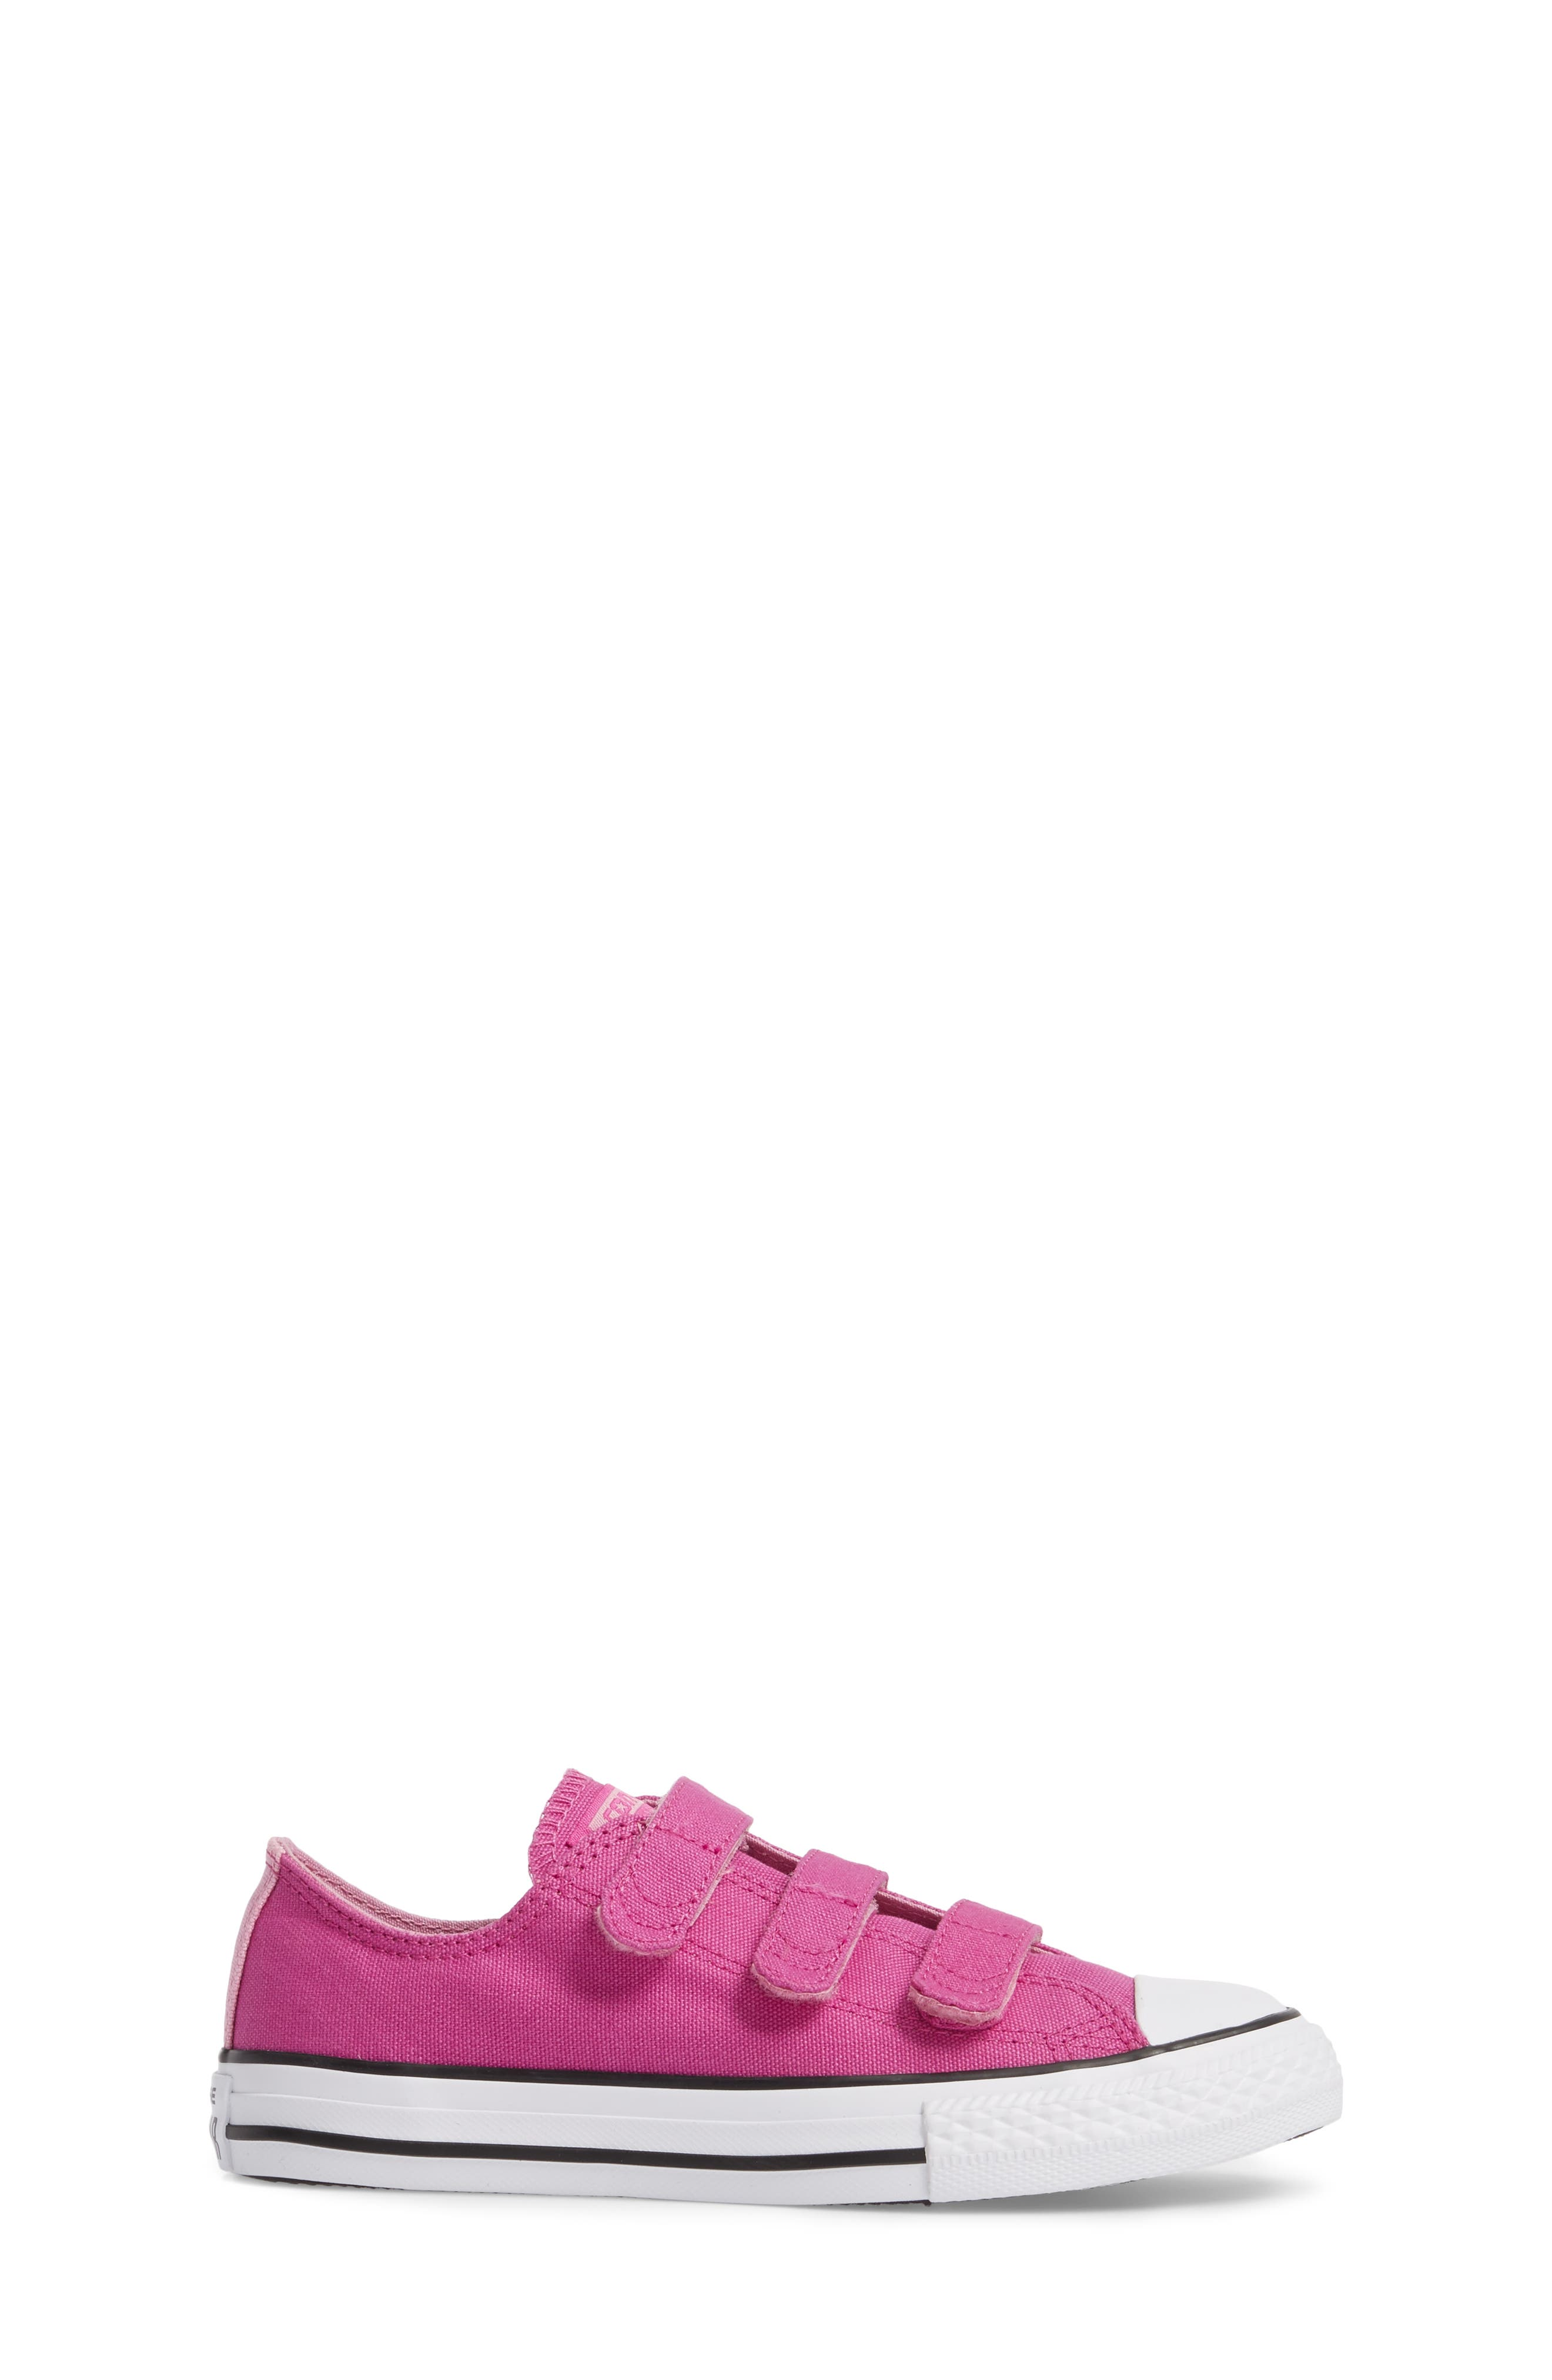 Chuck Taylor<sup>®</sup> All Star<sup>®</sup> 3V Low Top Sneaker,                             Alternate thumbnail 3, color,                             Hyper Magenta